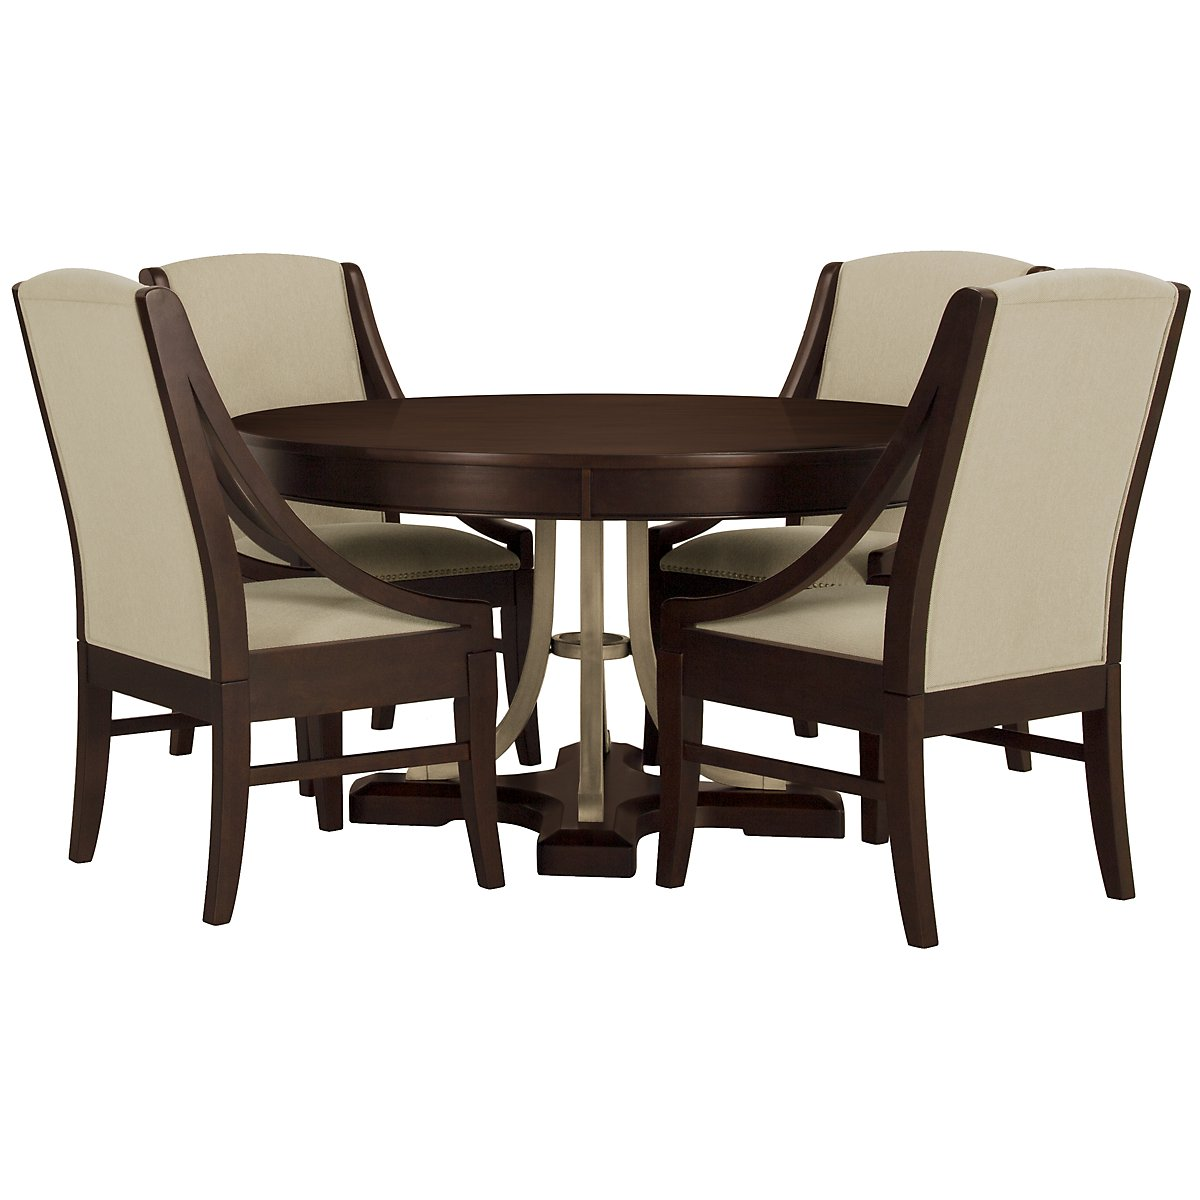 Canyon Dark Tone Round Table & 4 Sloped Chairs